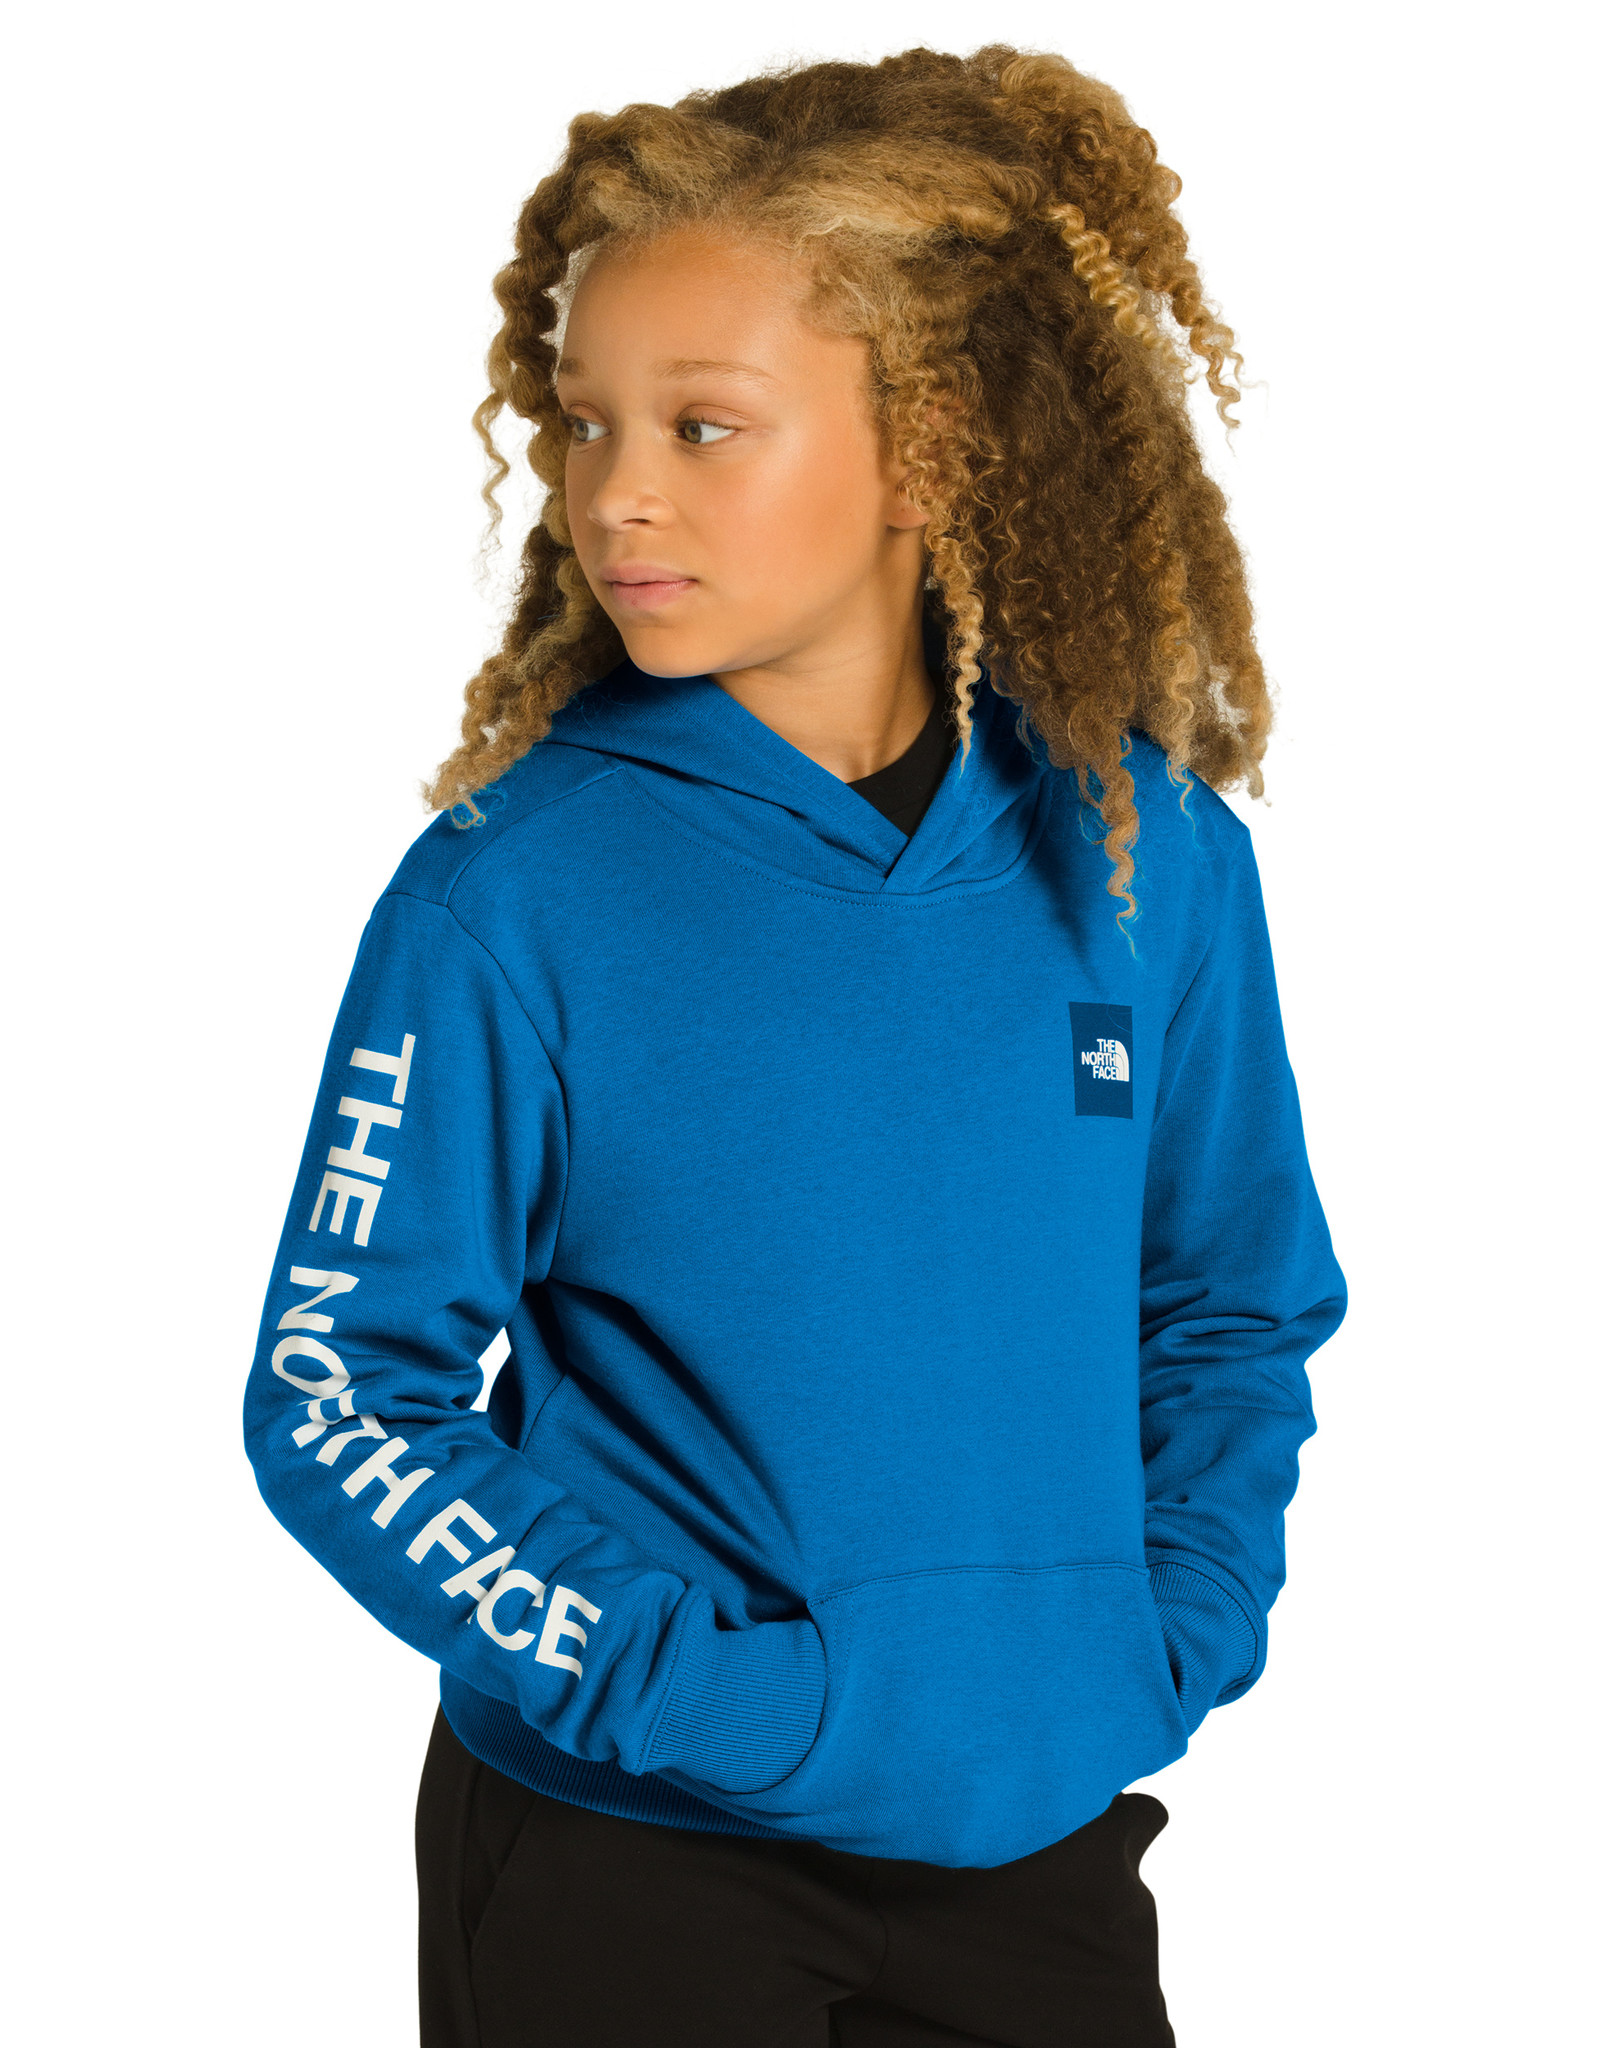 The North Face The North Face Youth Logowear Pullover Hoodie - S2020